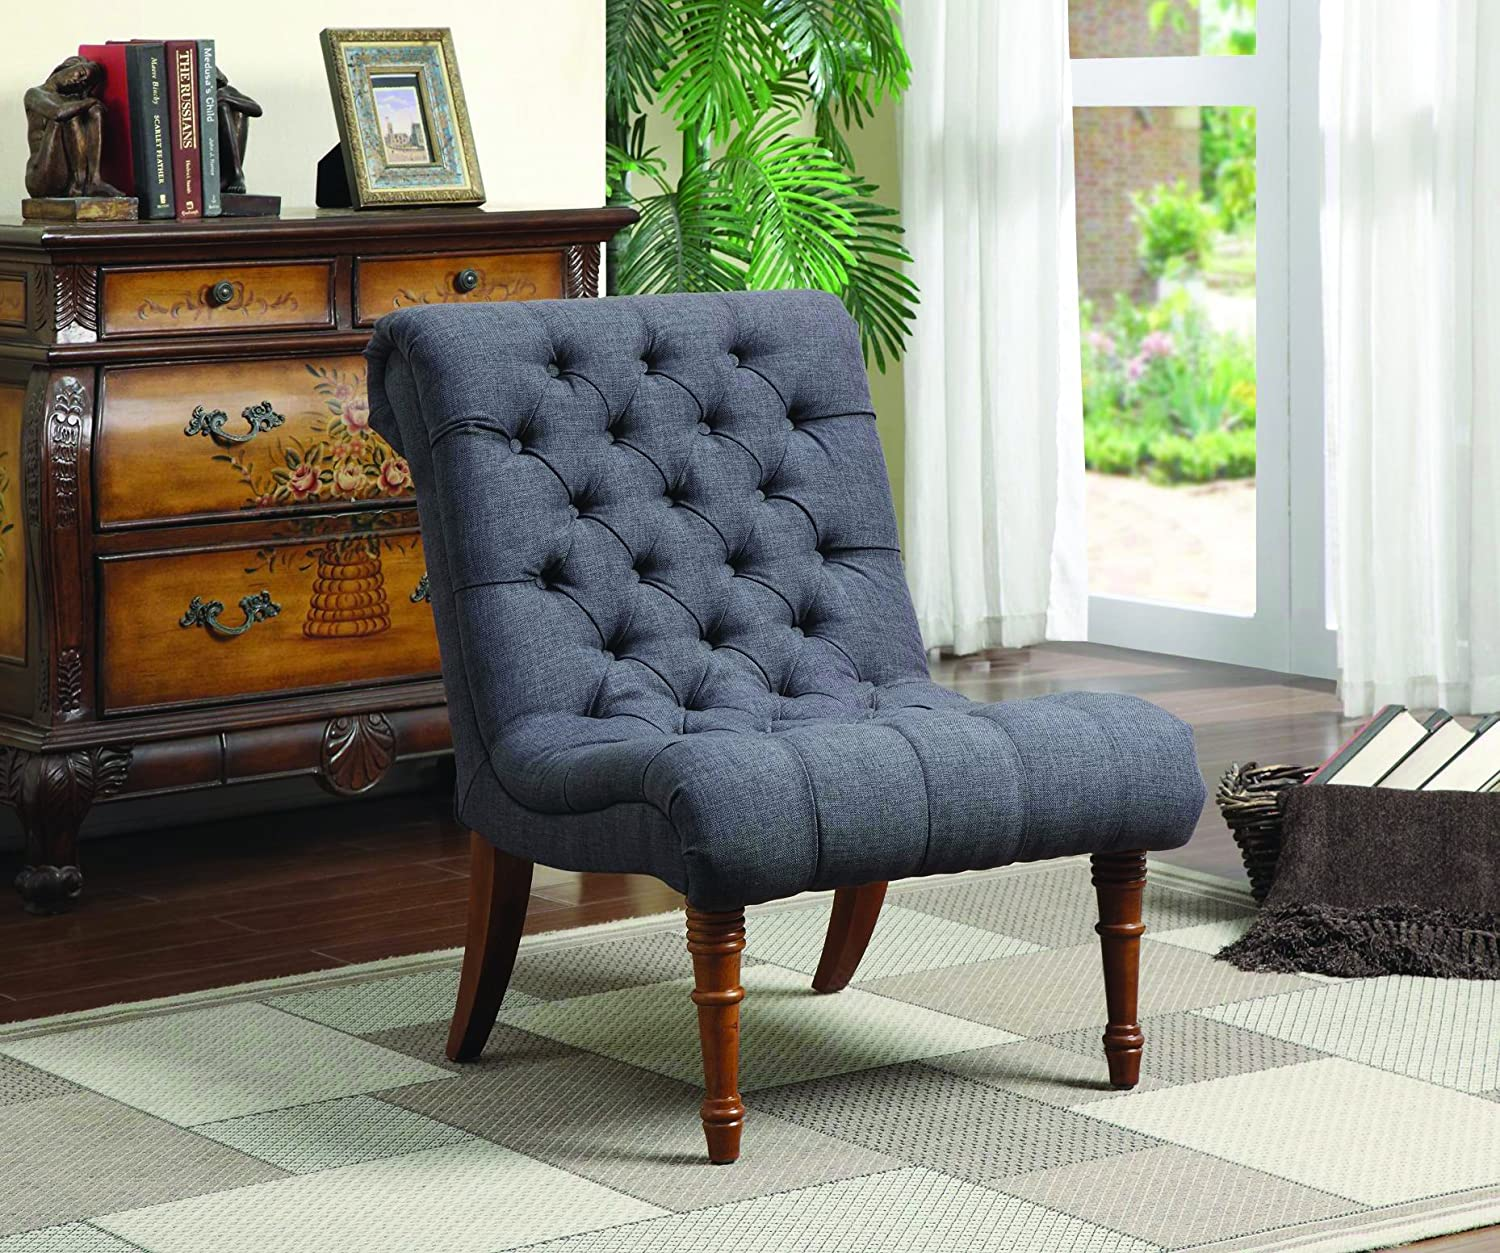 Top 6 Best Cheap Accent Chairs Under $100 & $200 (2021 Reviews) 4